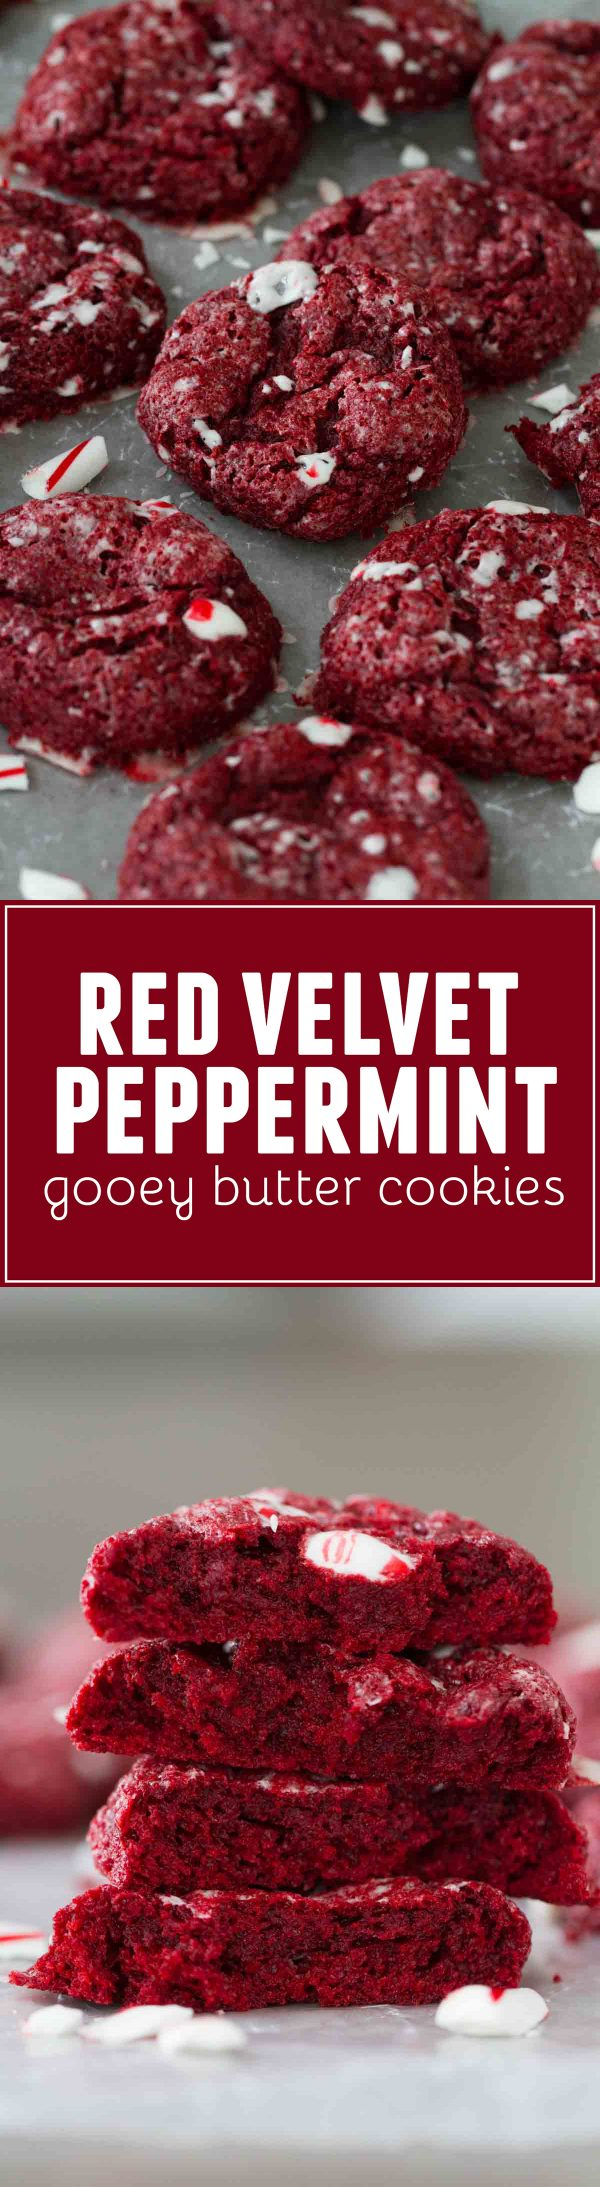 A holiday twist on red velvet, these Red Velvet Peppermint Gooey Butter Cookies are a cinch to make and have the perfect amount of holiday flair.